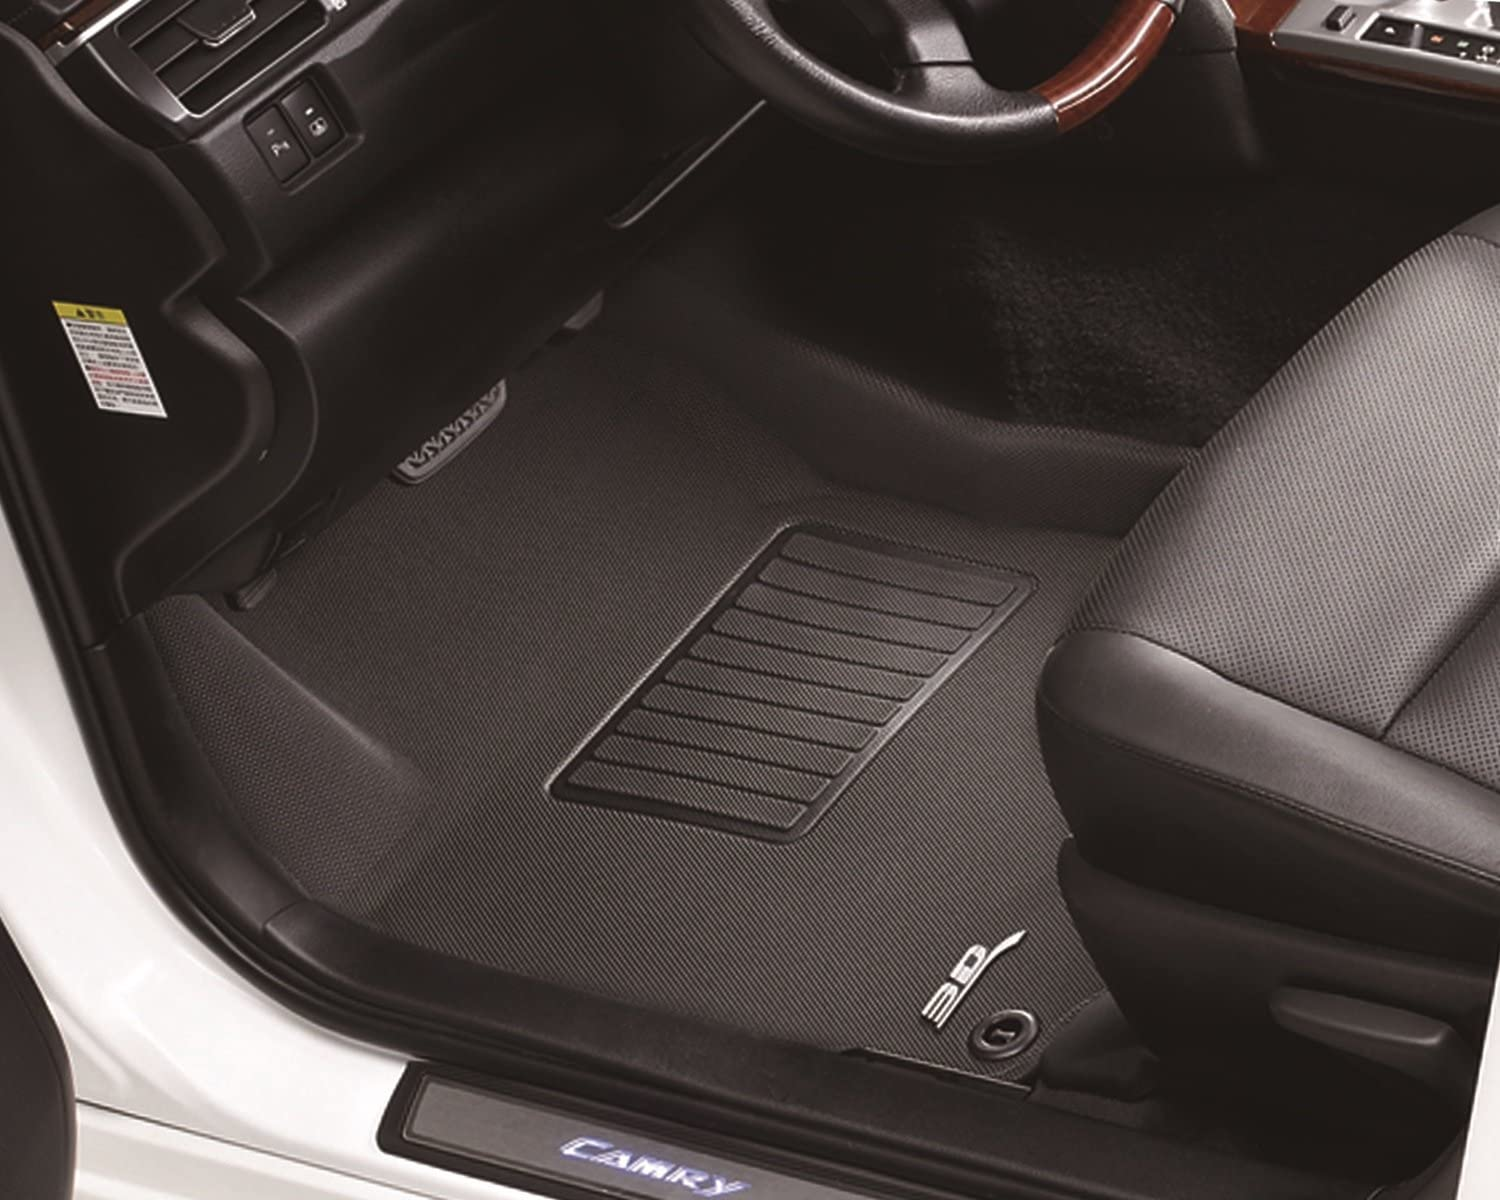 1st /& 2nd Row, Black 3D MAXpider L1TY23701509 Toyota Camry 2018-2020 Custom Fit All-Weather Car Floor Mats Liners Kagu Series